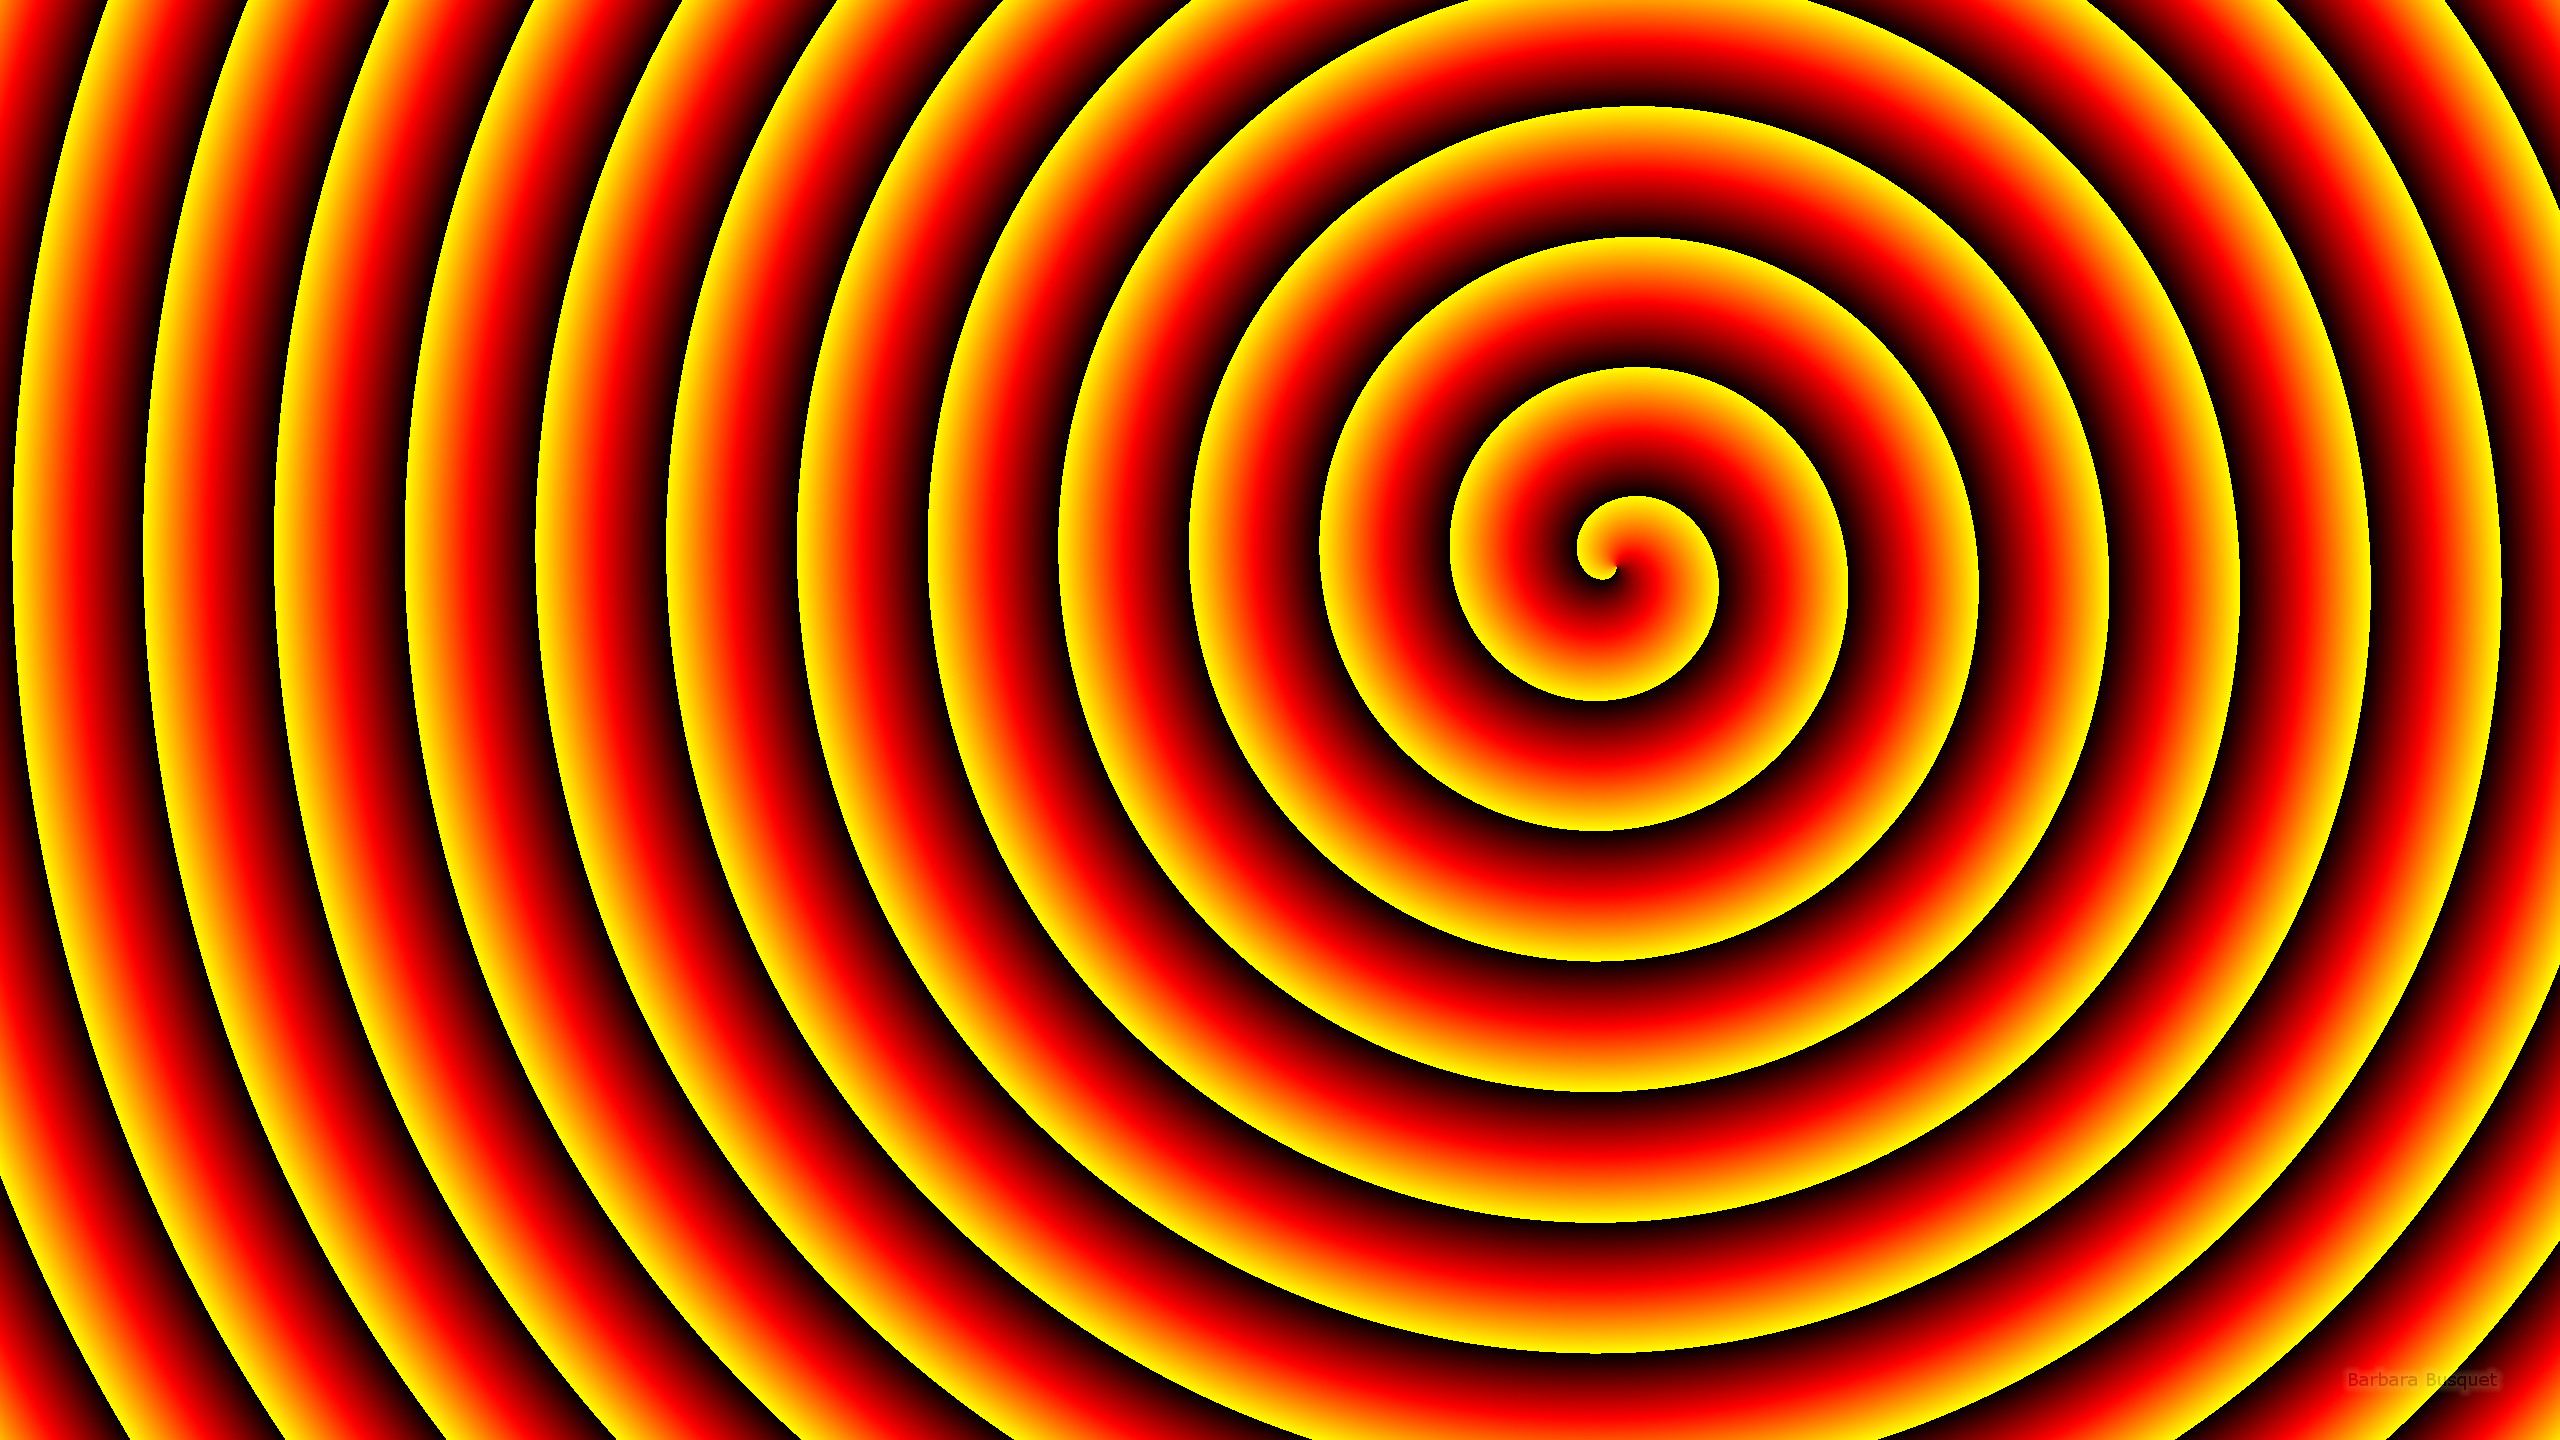 Spiral Pattern Wallpapers Barbaras Hd Wallpapers